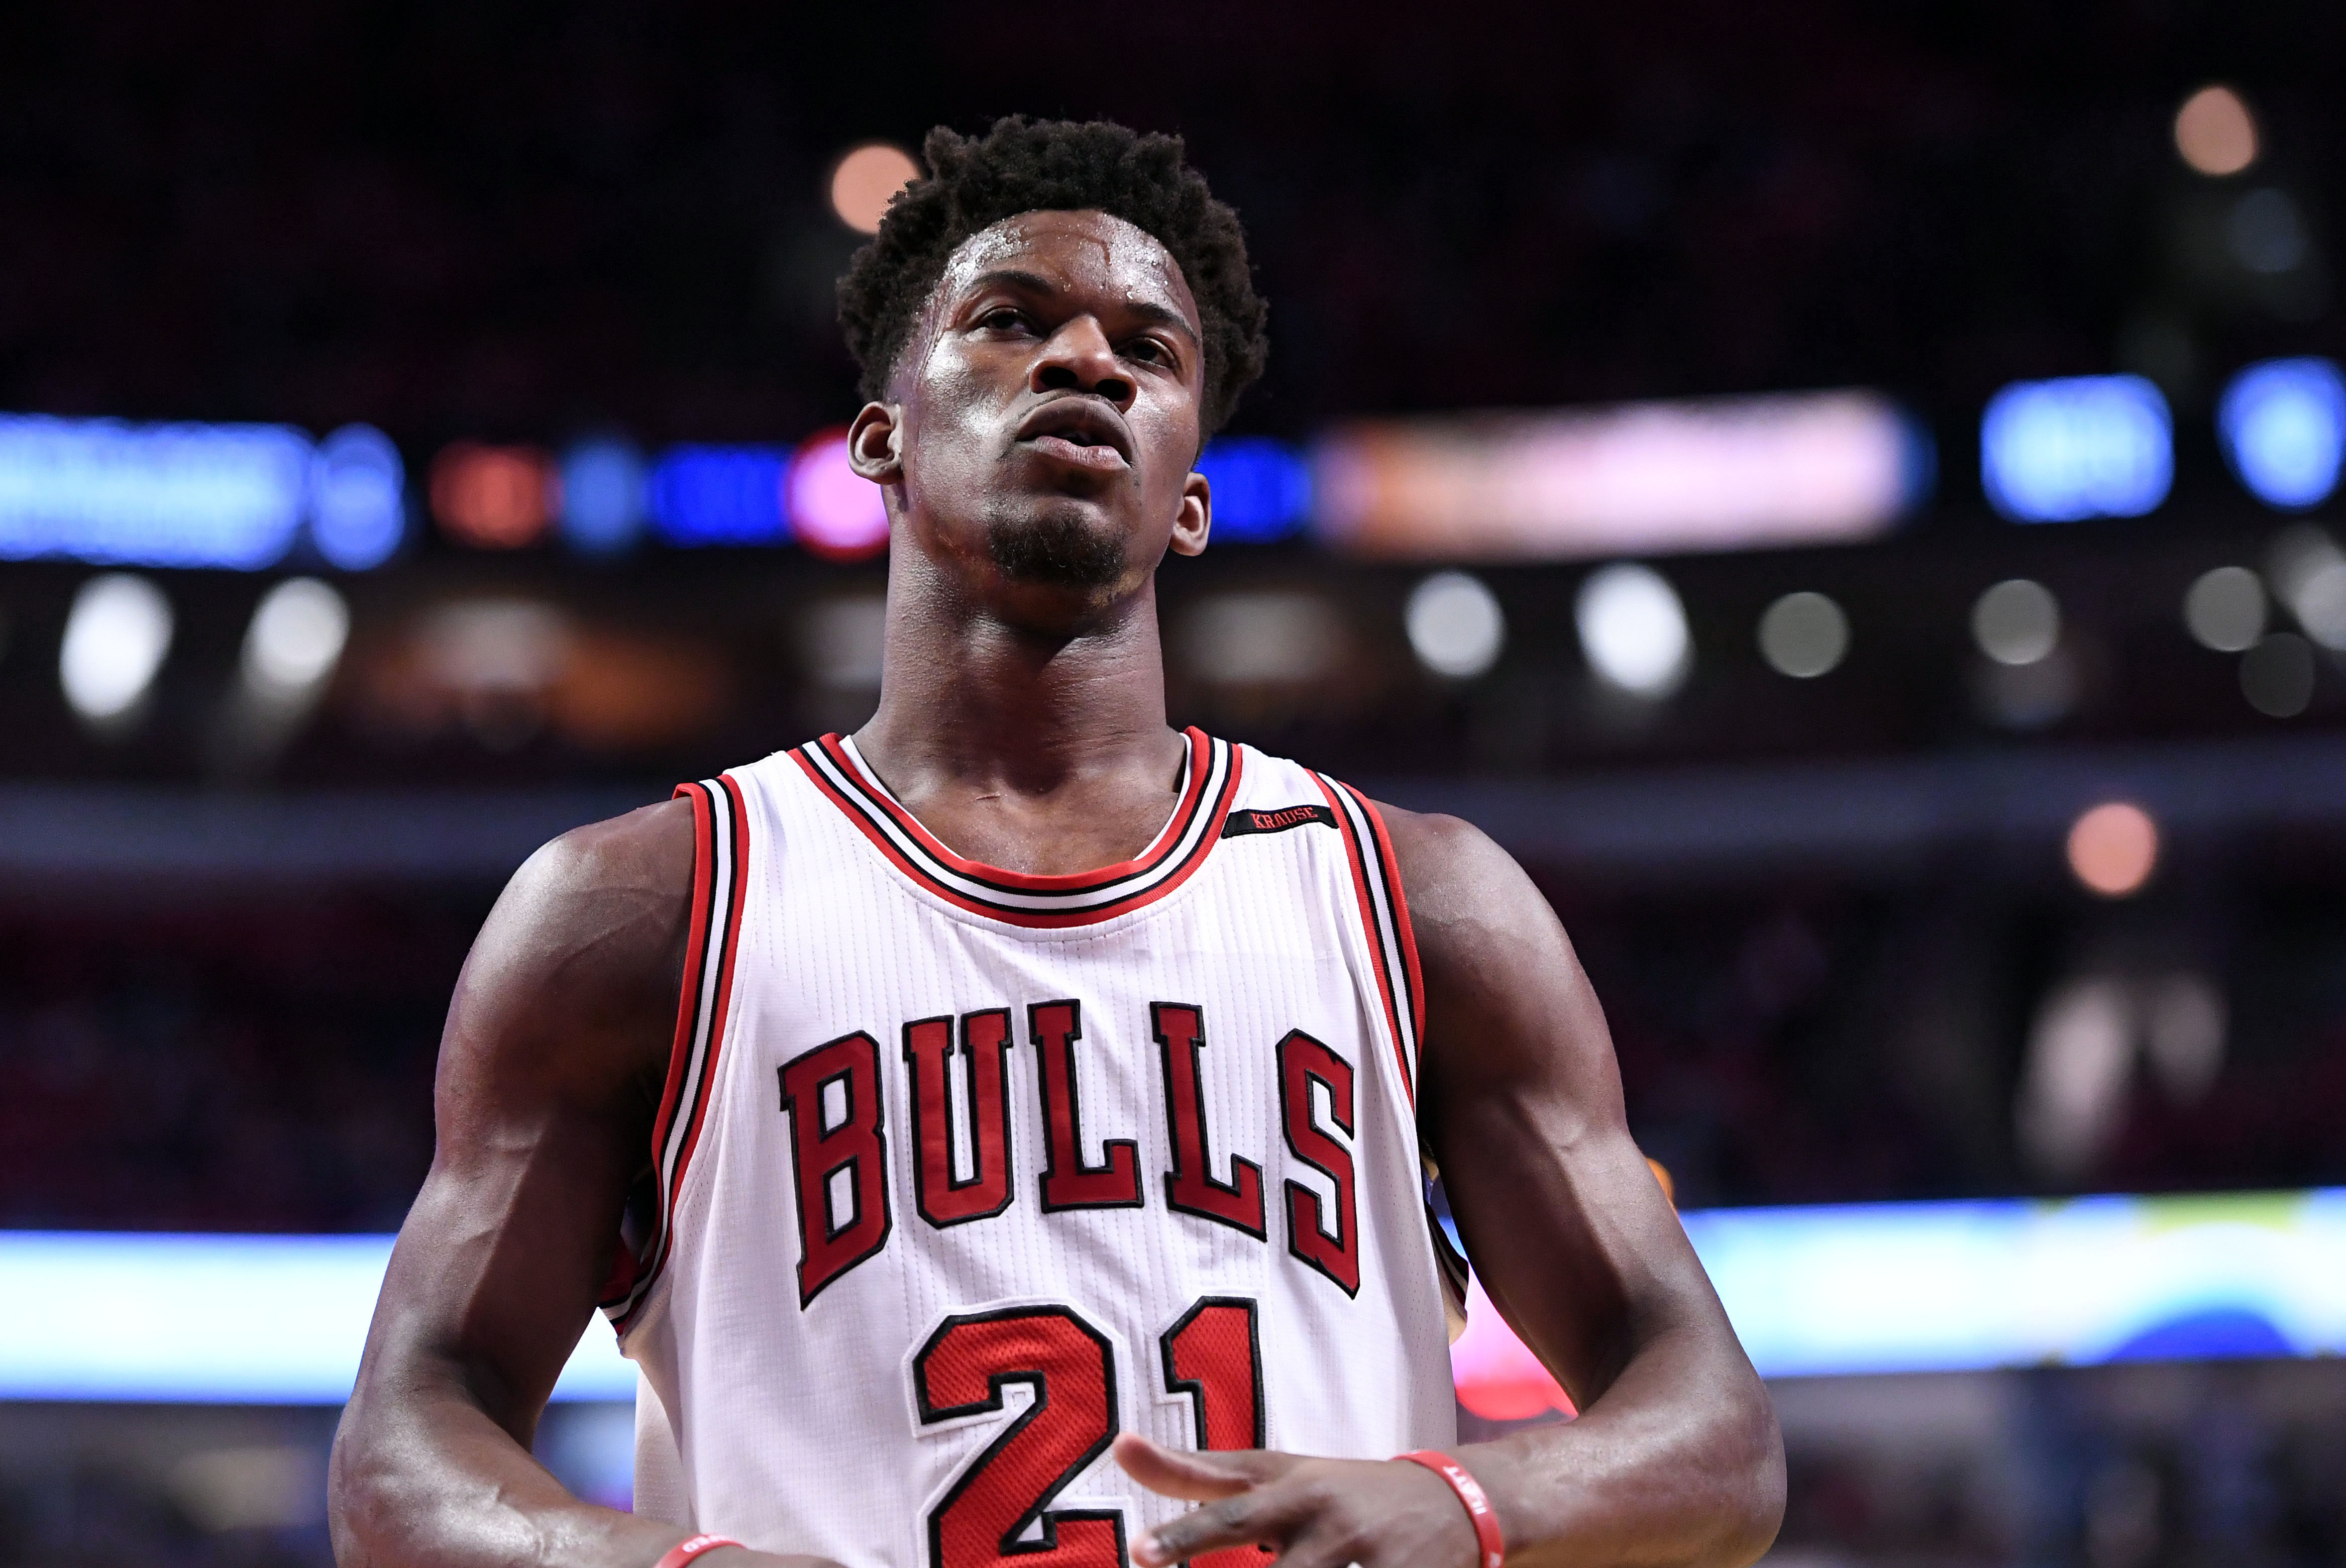 Butler to join Thibodeau with Timberwolves